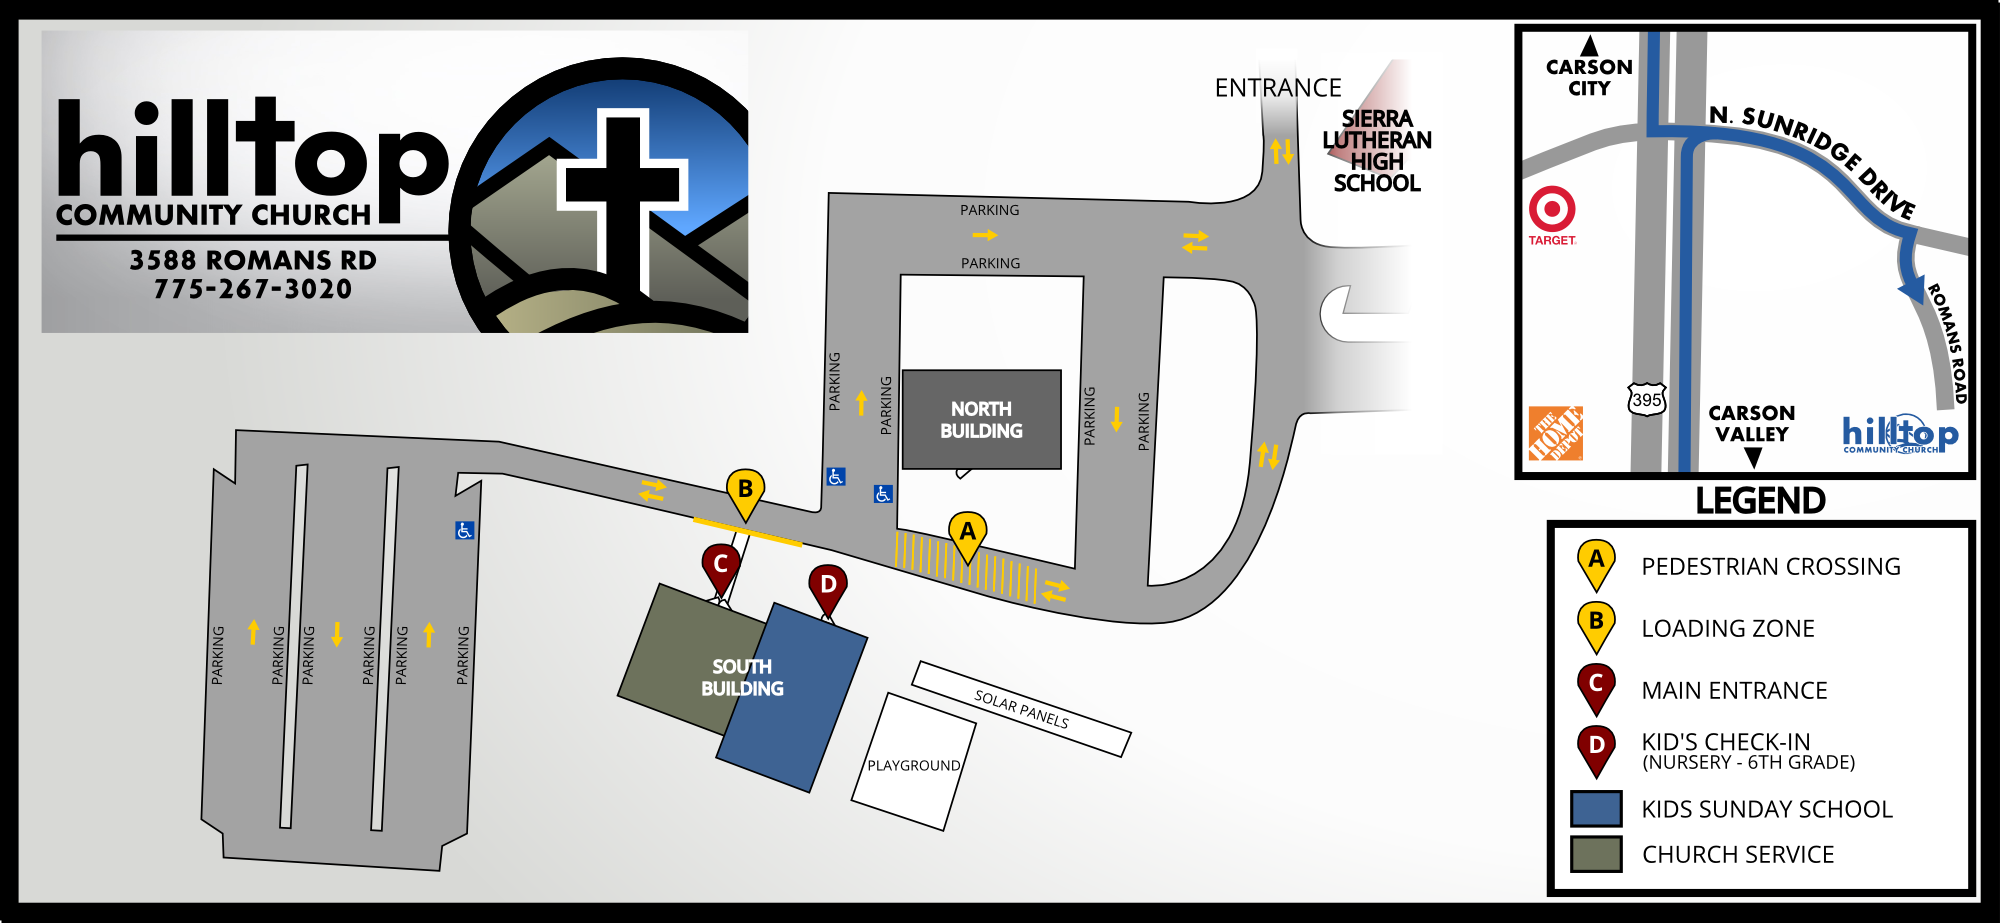 Hilltop Community Church Campus Map